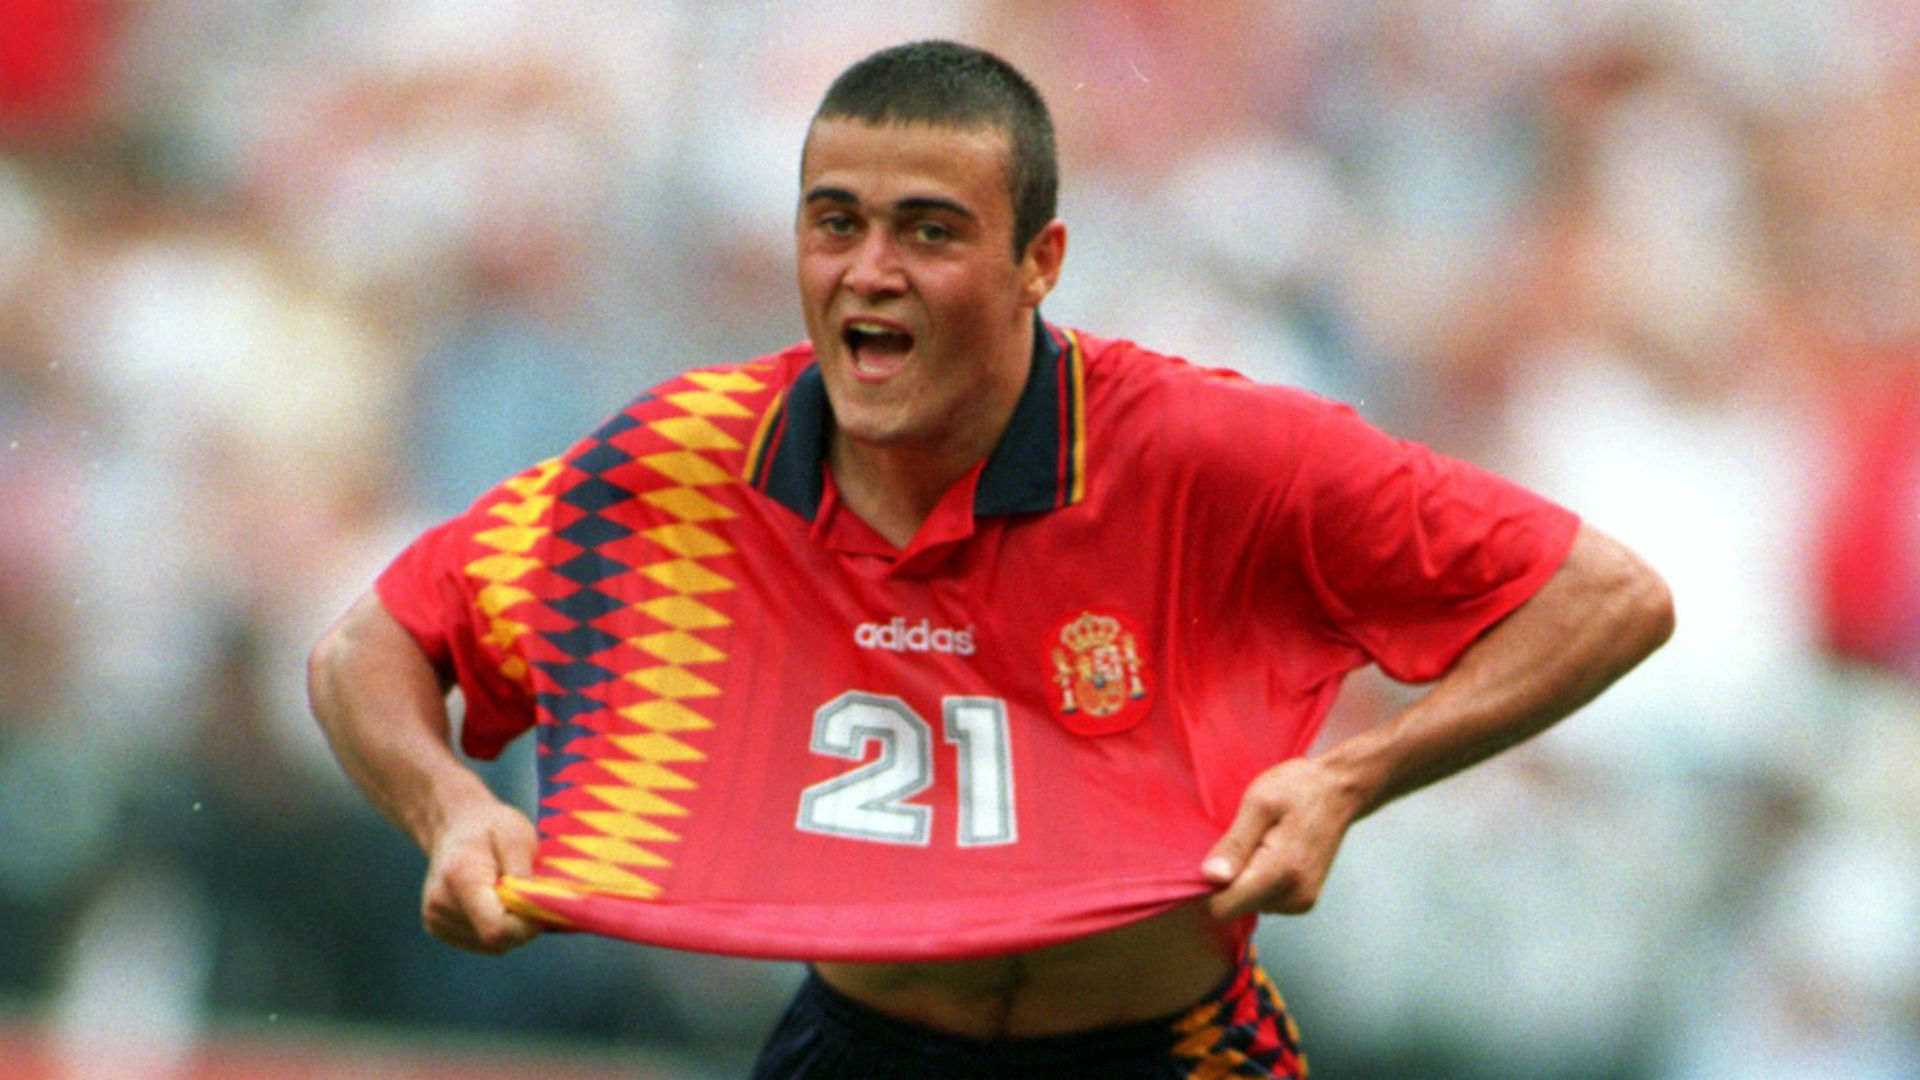 Luis Enrique Spain 1994 World Cup